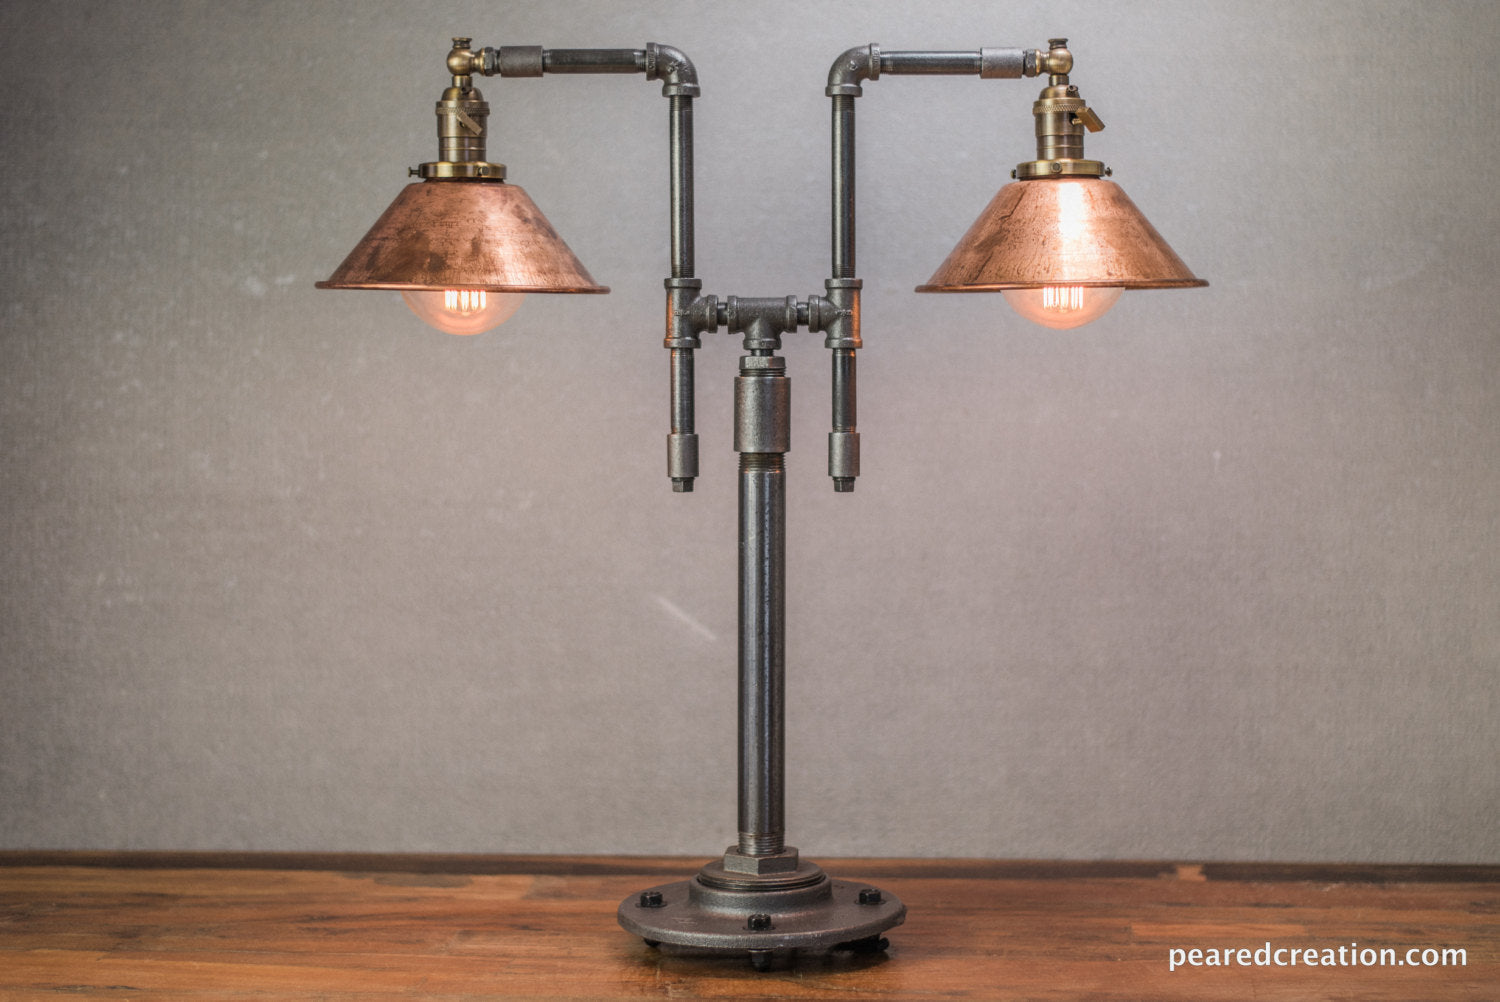 Vintage Table Lamp Industrial Style Iron Piping Copper Shade